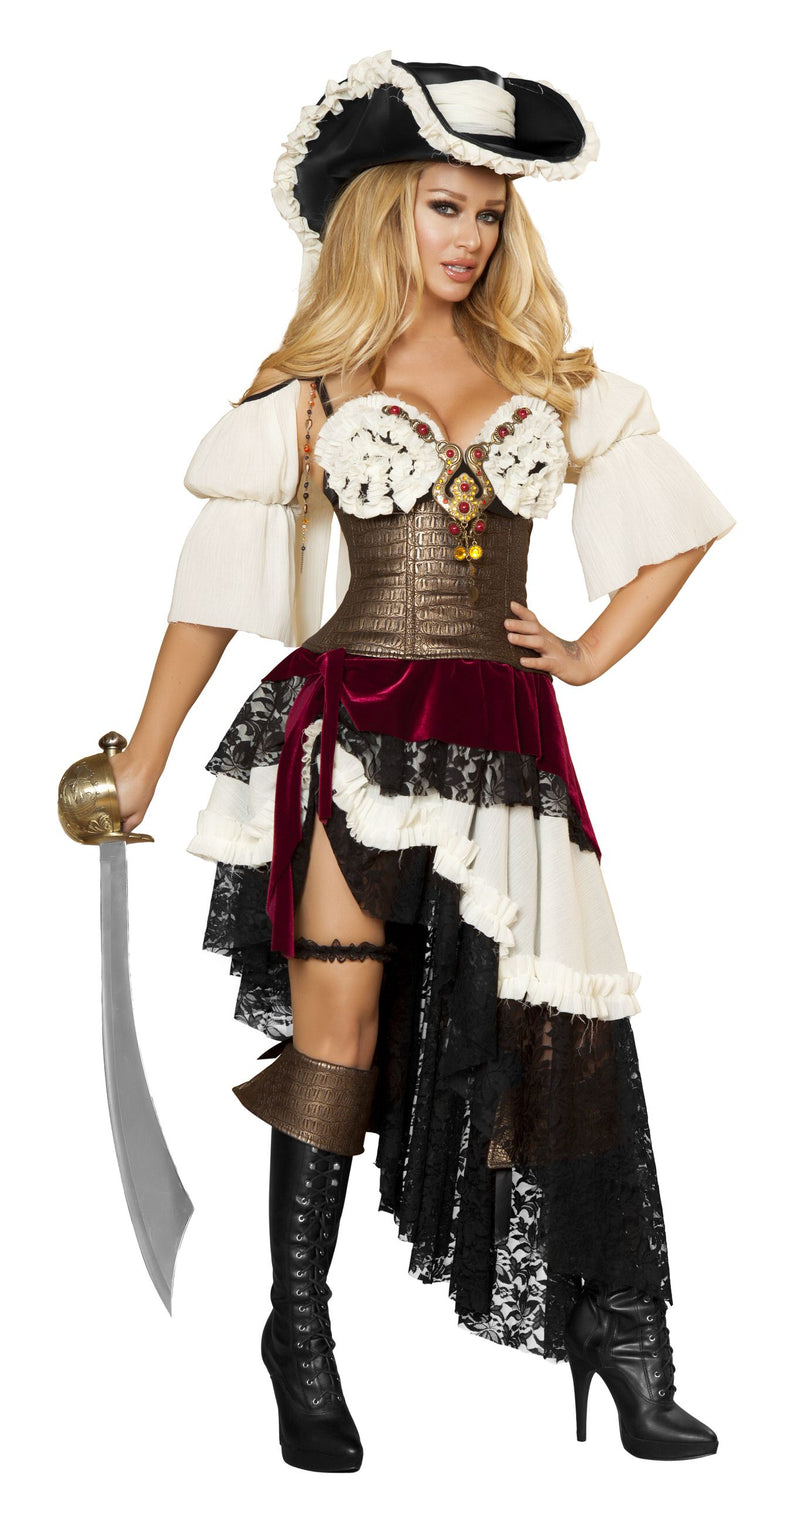 3-Piece-Pirate-Bra-Top-Cincher-&-Layered-Skirt-Party-Costume